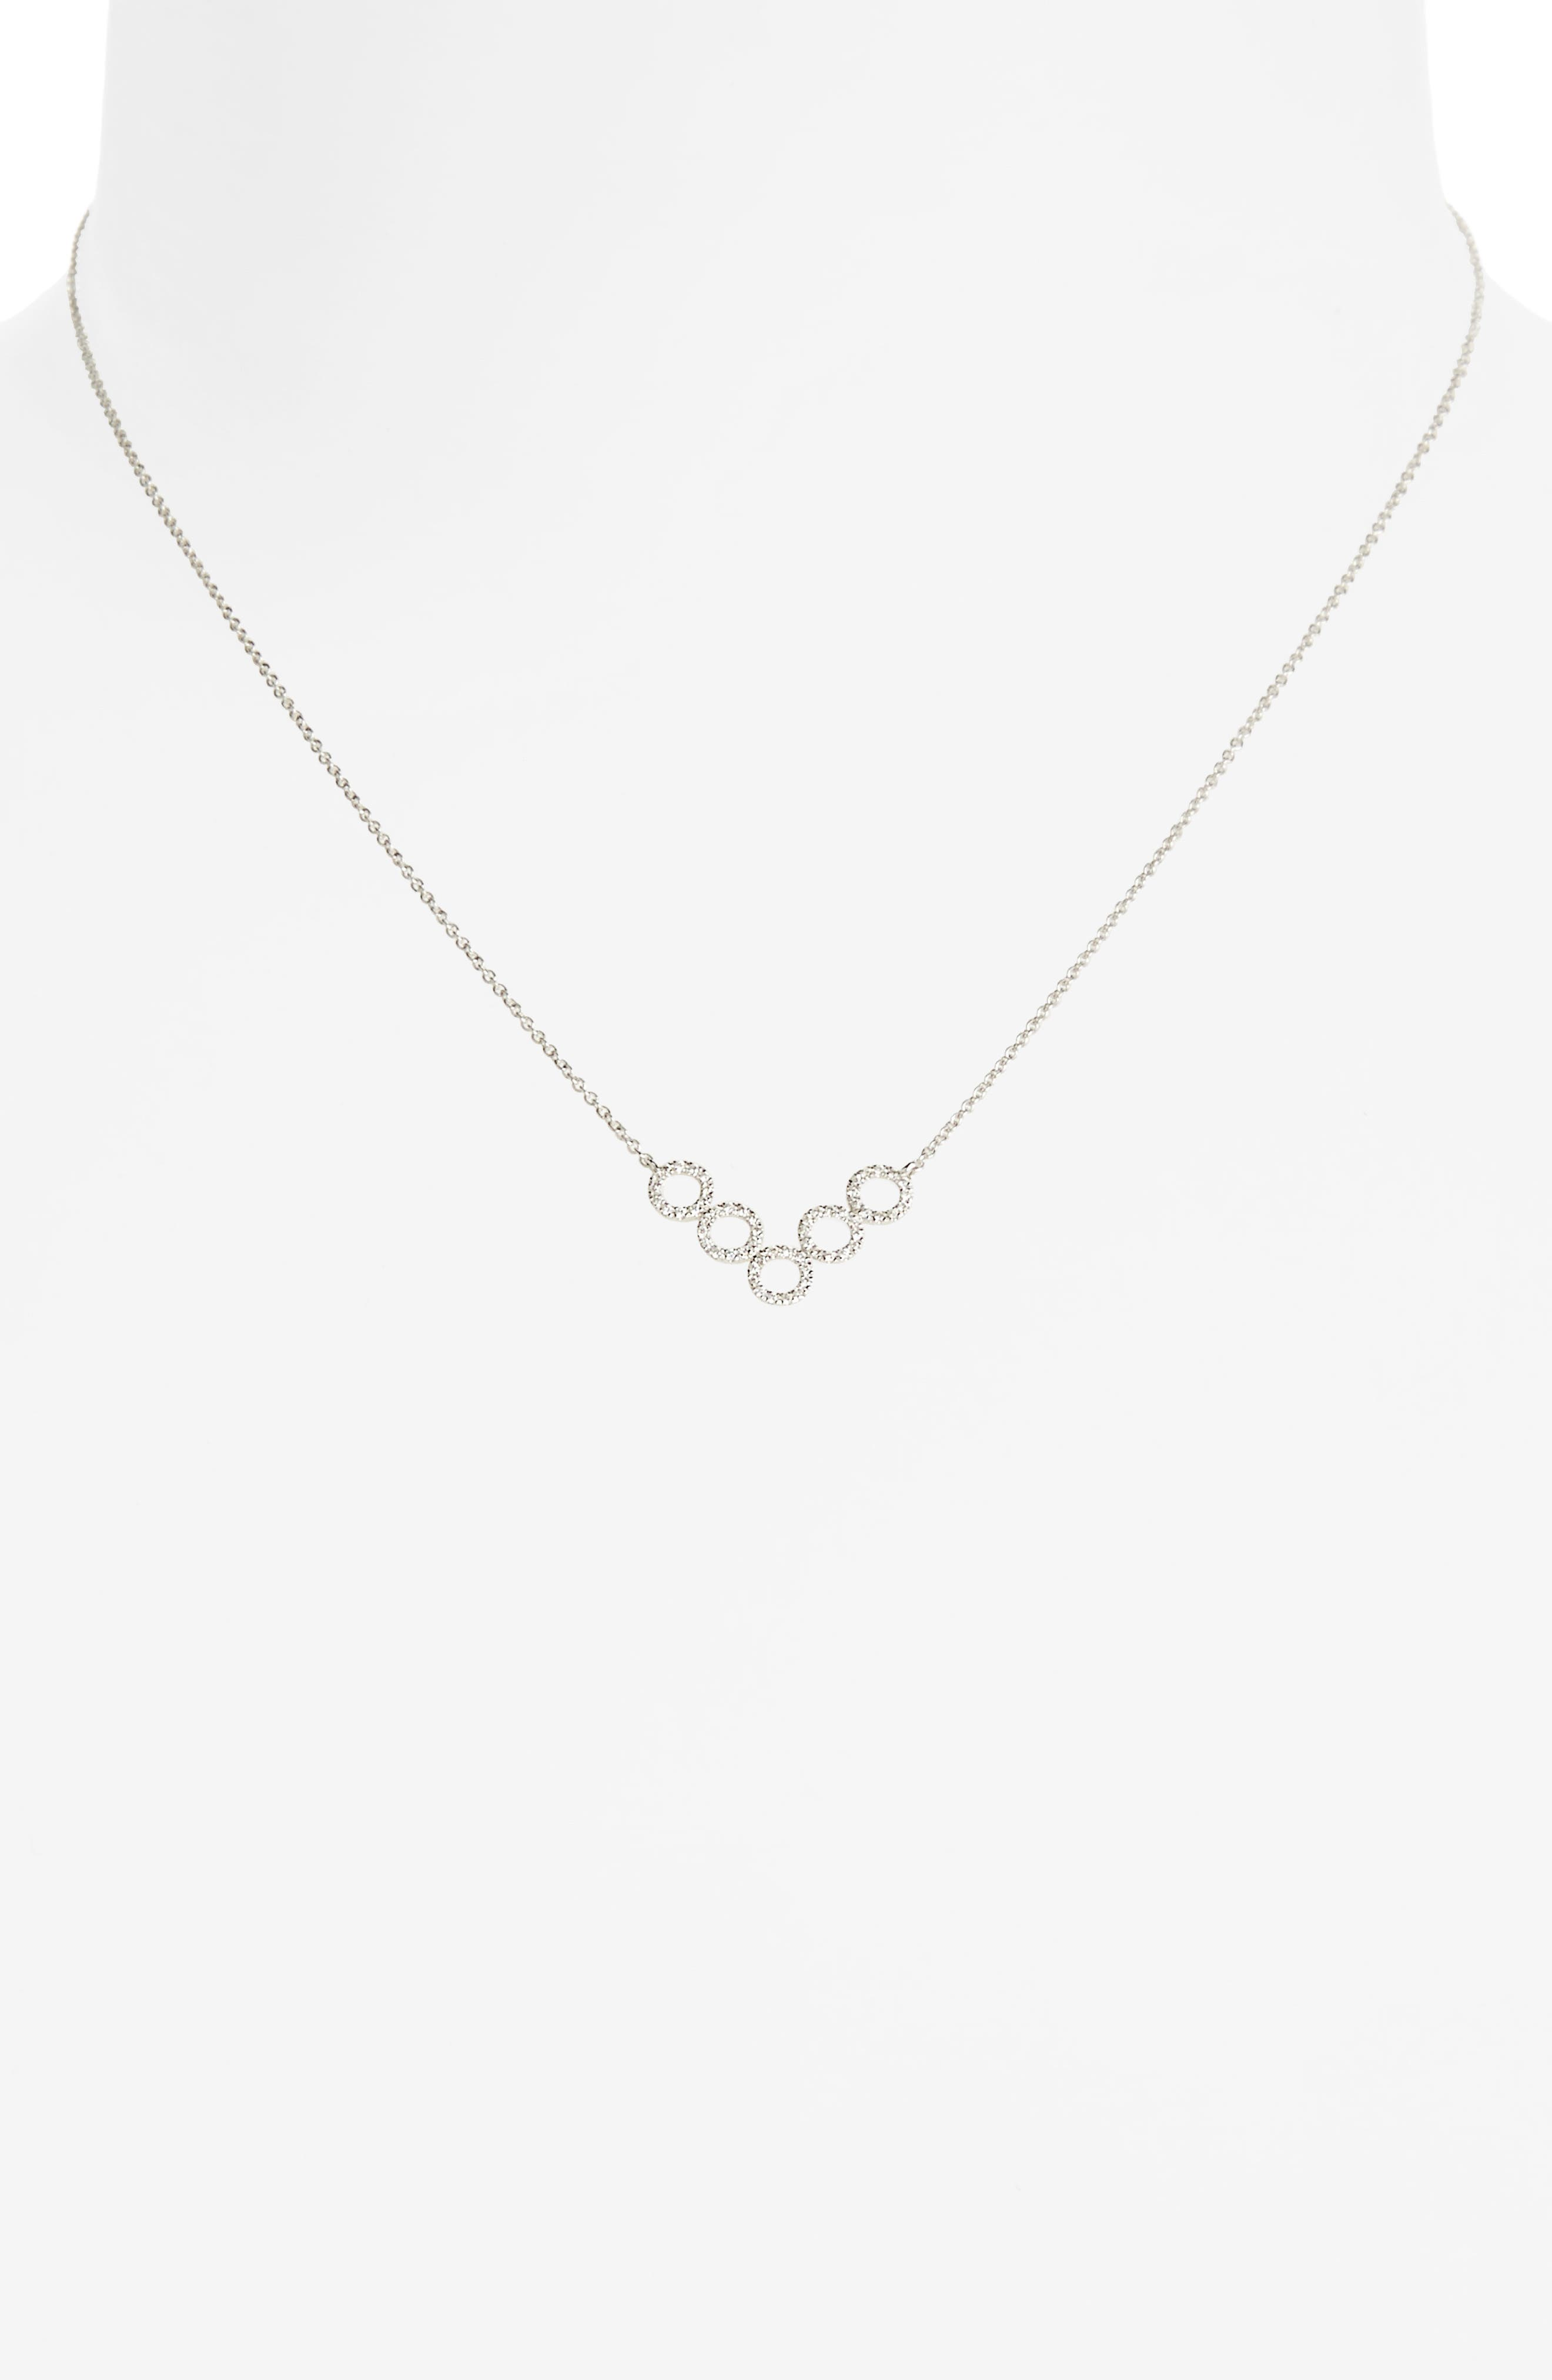 Main Image - Bony Levy Geometric Circle Pendant Necklace (Nordstrom Exclusive)